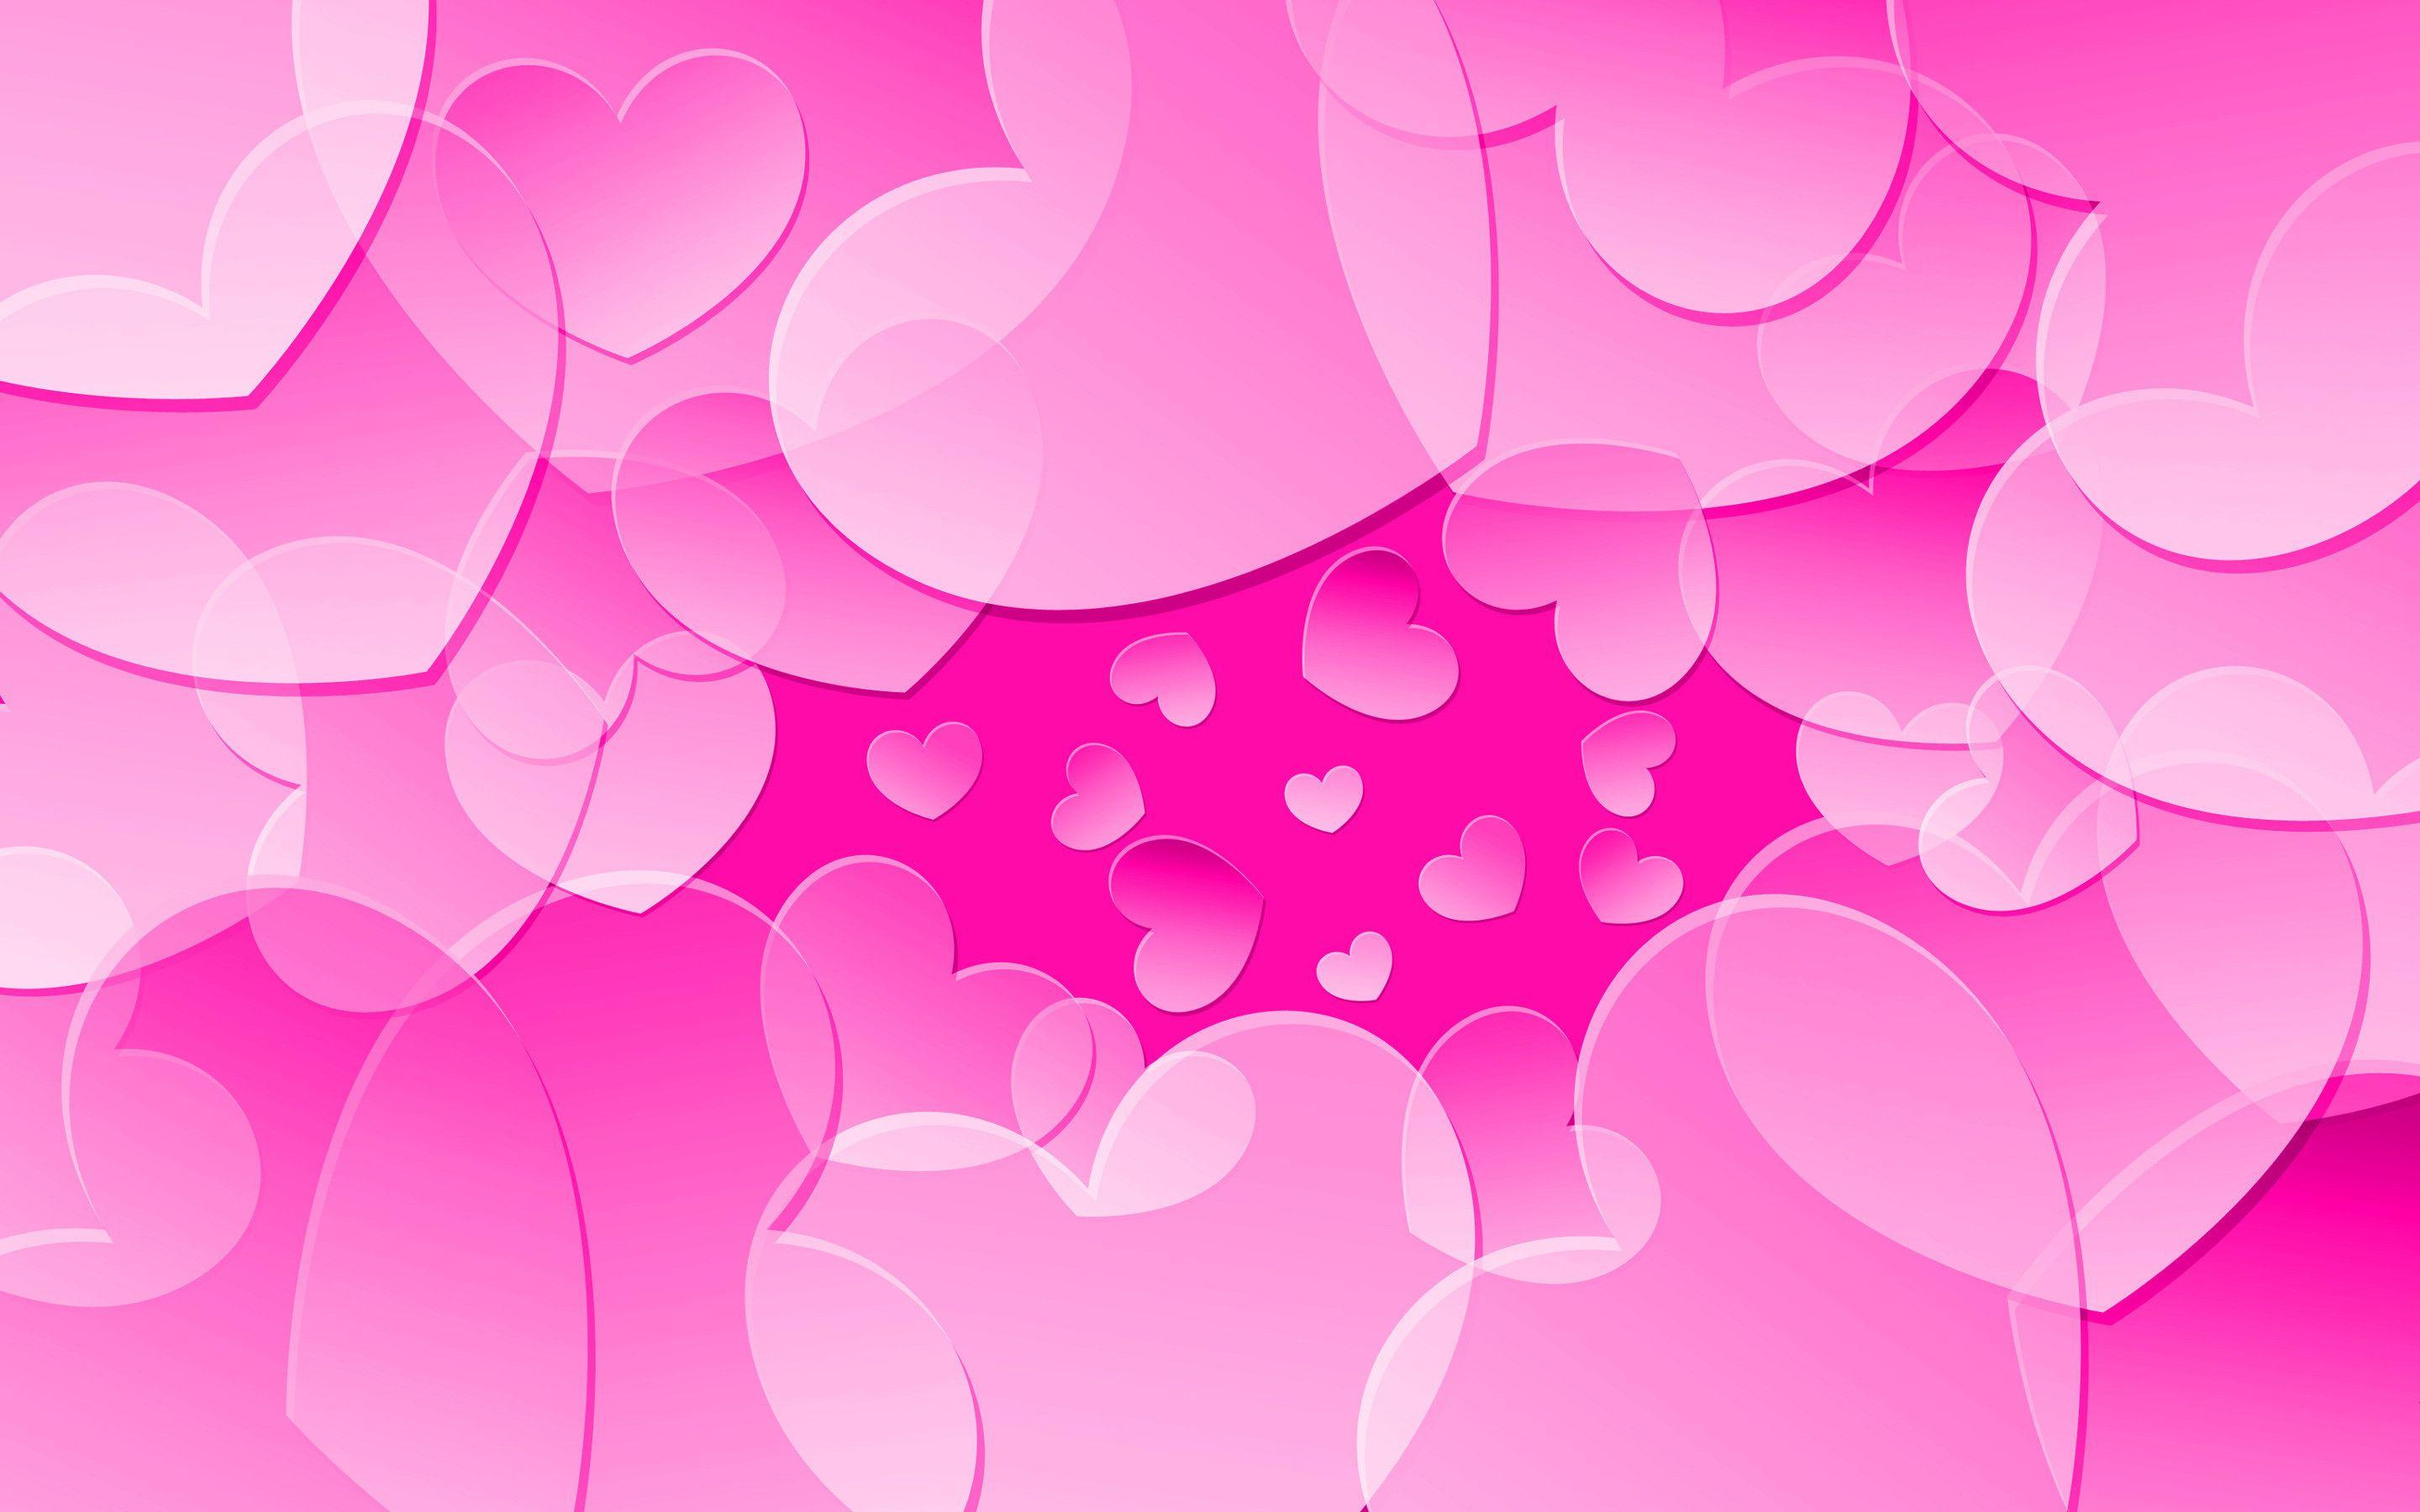 Pink Heart Wallpapers - Wallpaper cave